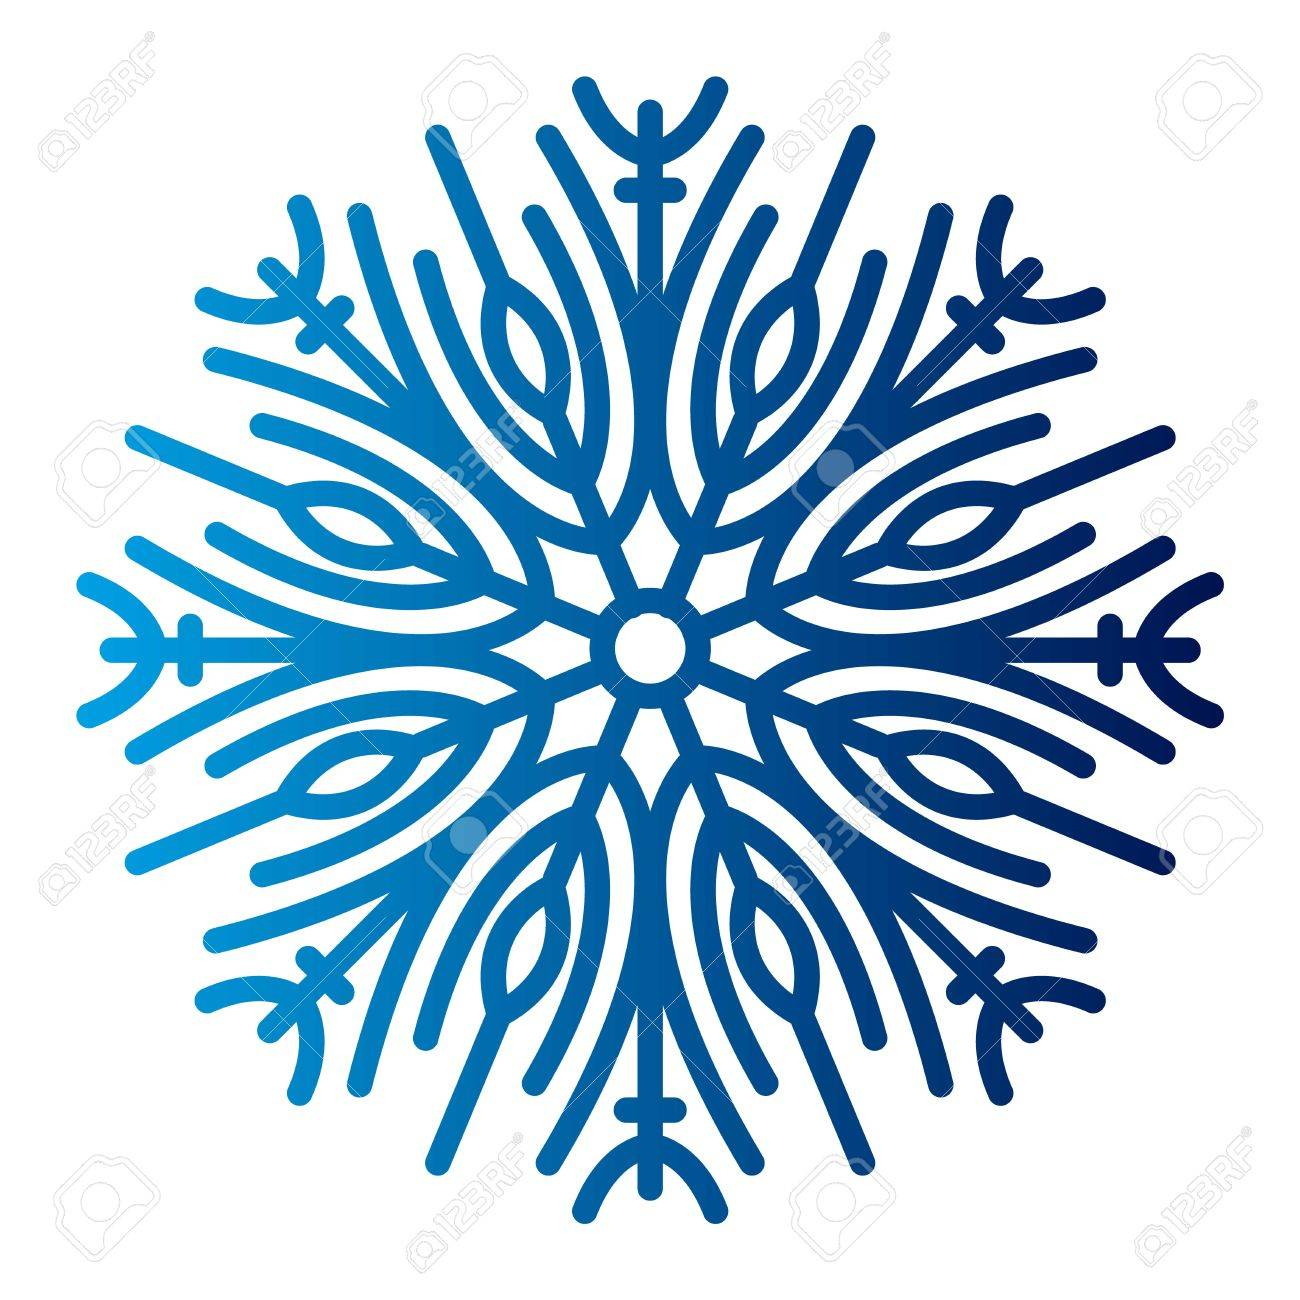 snowflake vector illustration and season nature winter sign symbol rh 123rf com free snowflake vector pattern free snowflake vector pattern